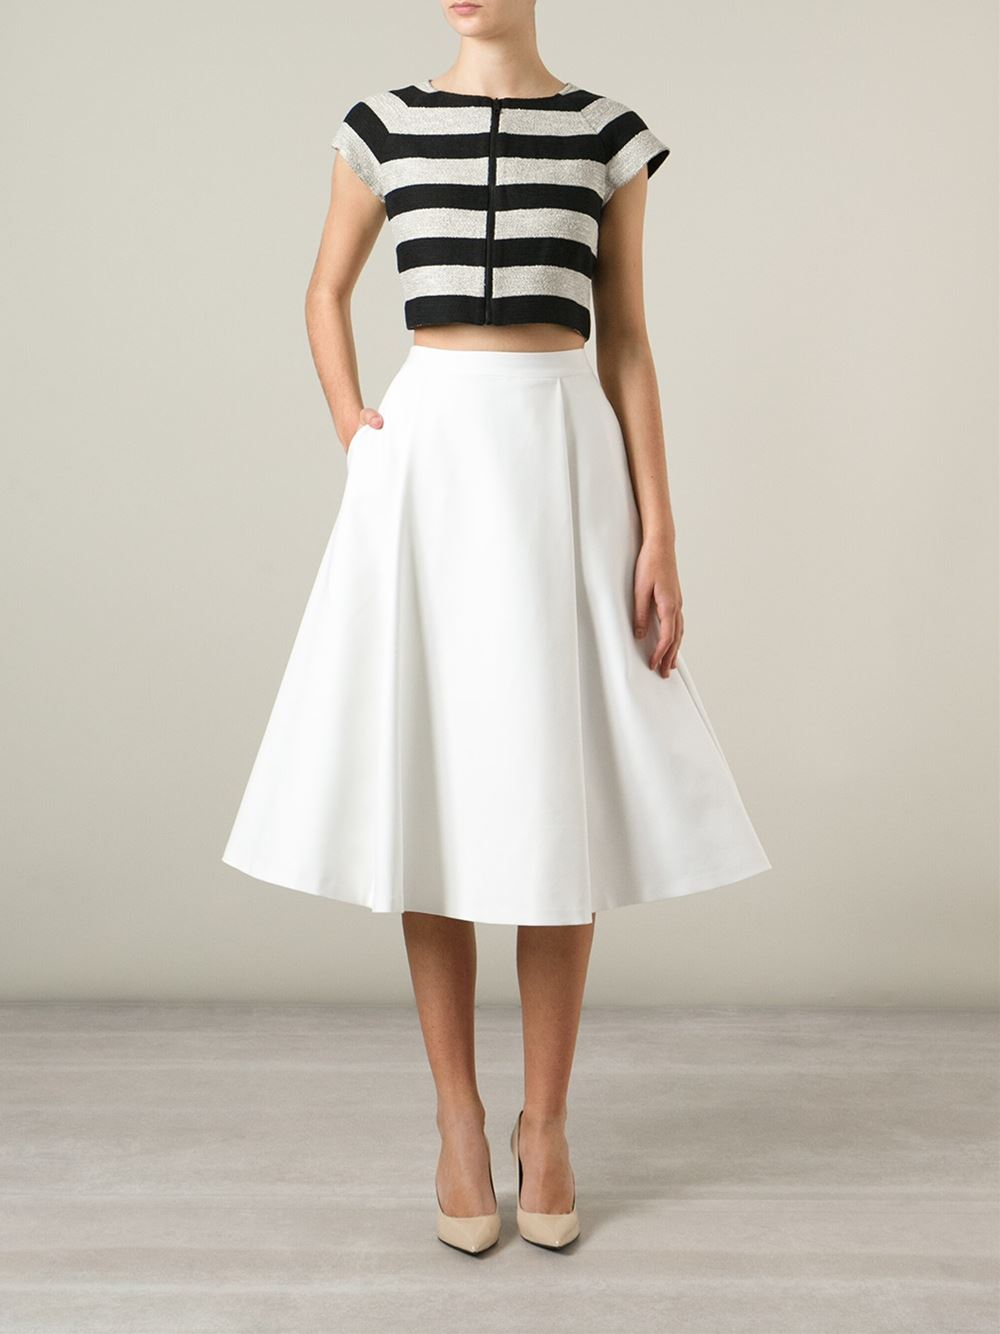 Alice   olivia Box Pleat Midi Skirt in White | Lyst